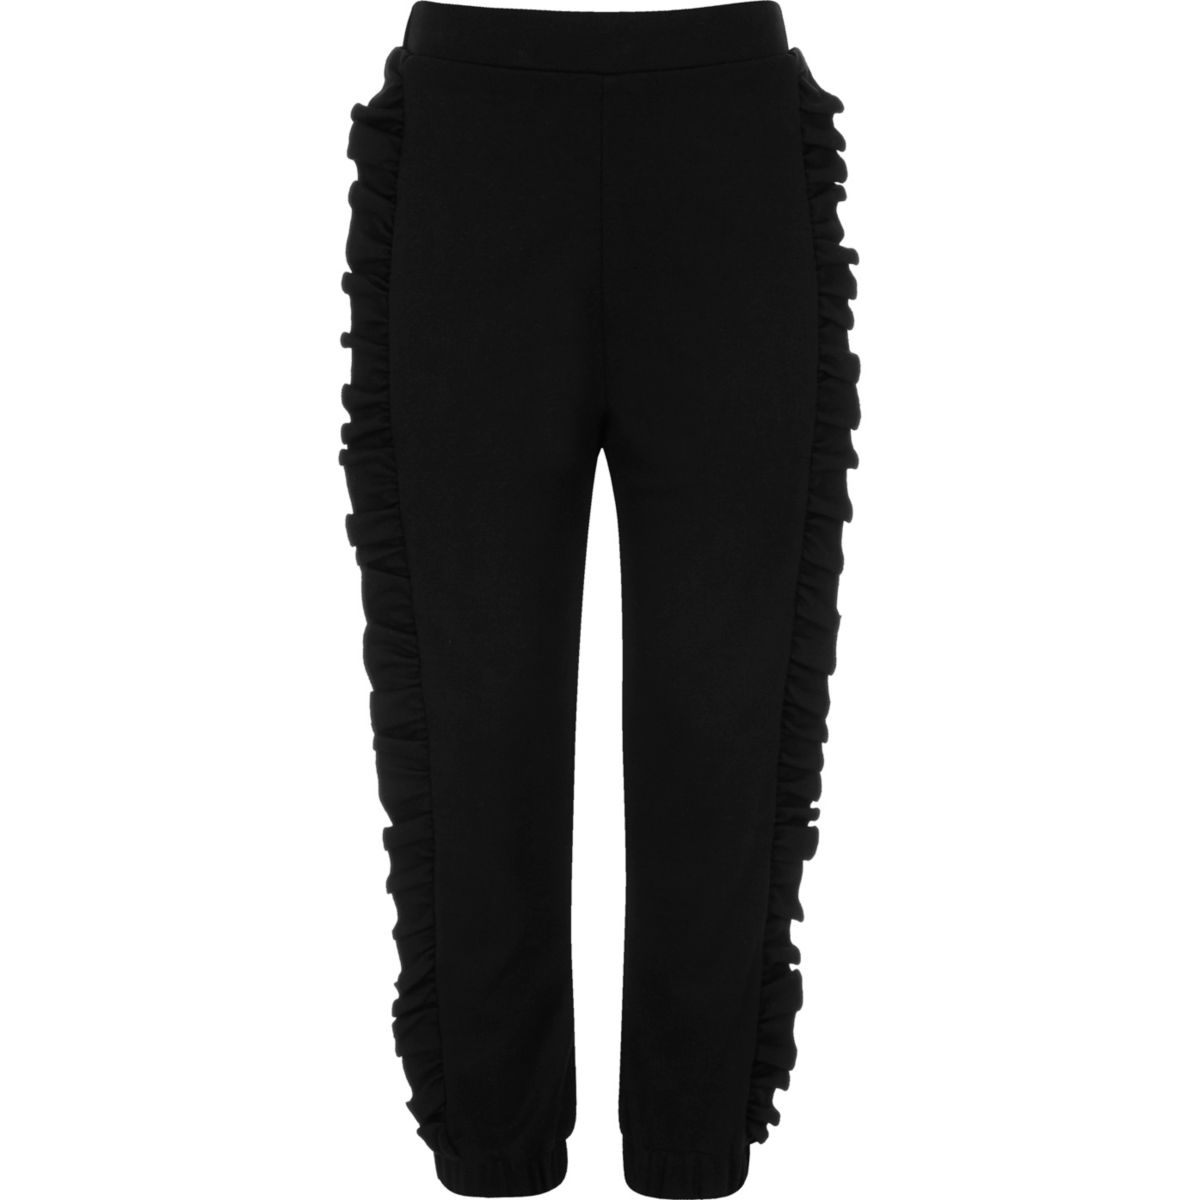 Girls black frill side pants